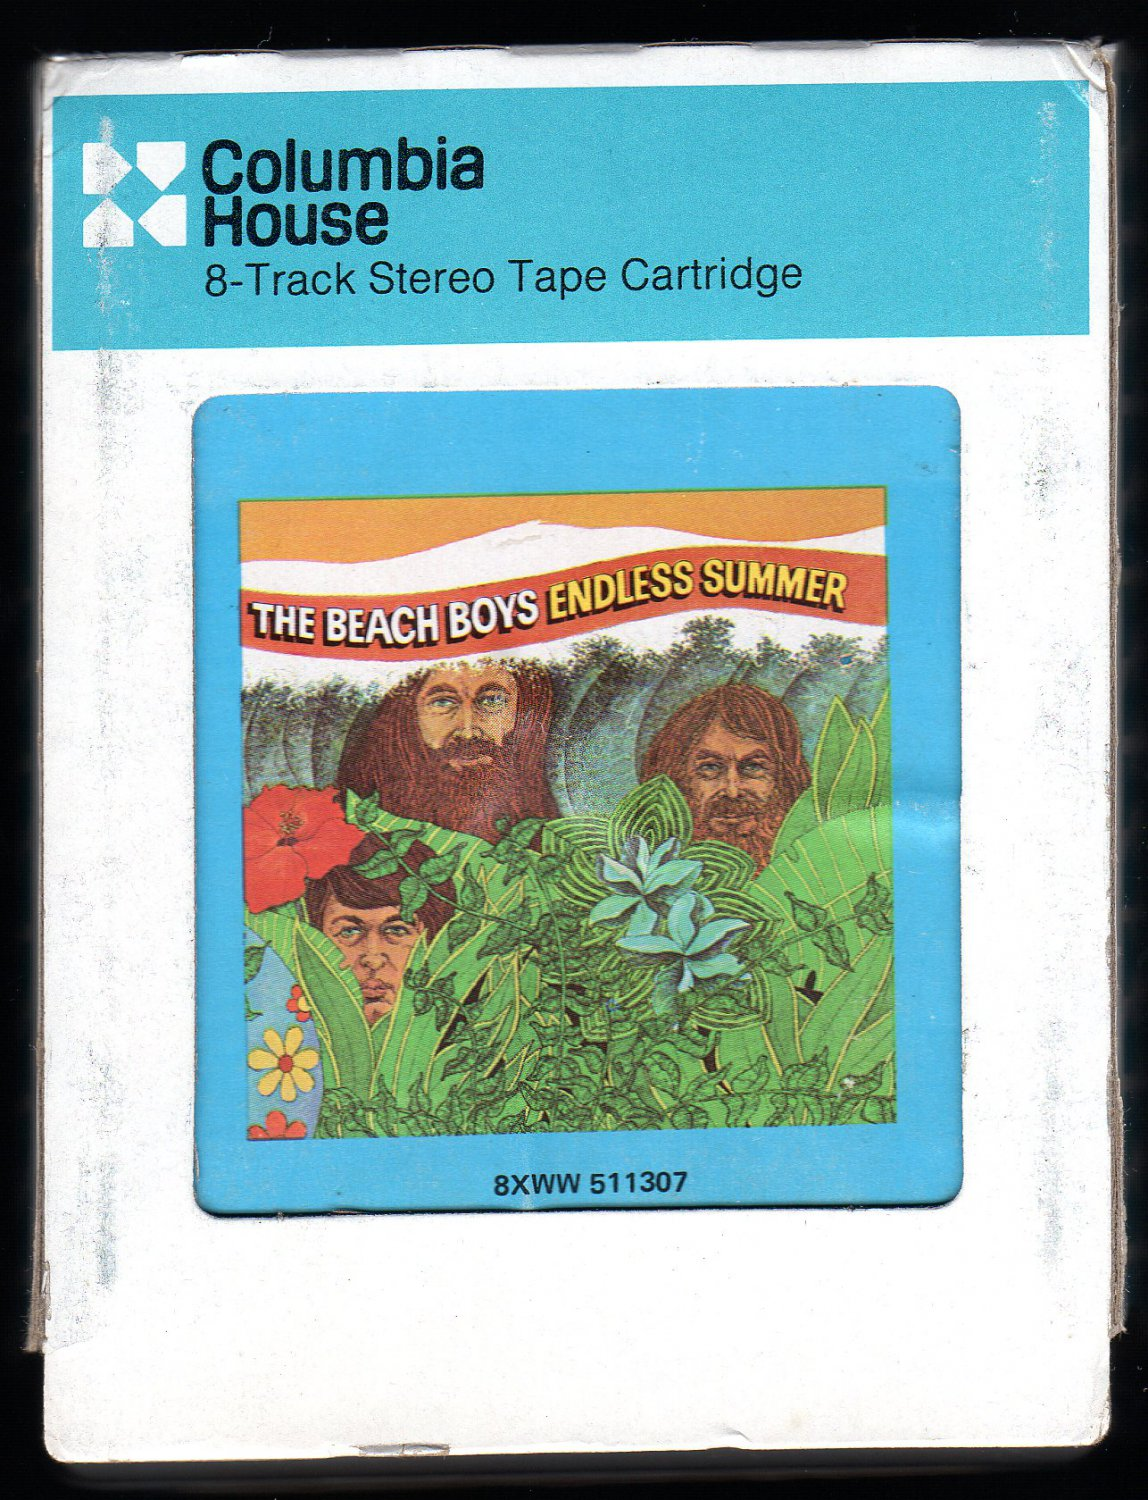 The Beach Boys - Endless Summer 1974 CRC CAPITOL A23 8-TRACK TAPE